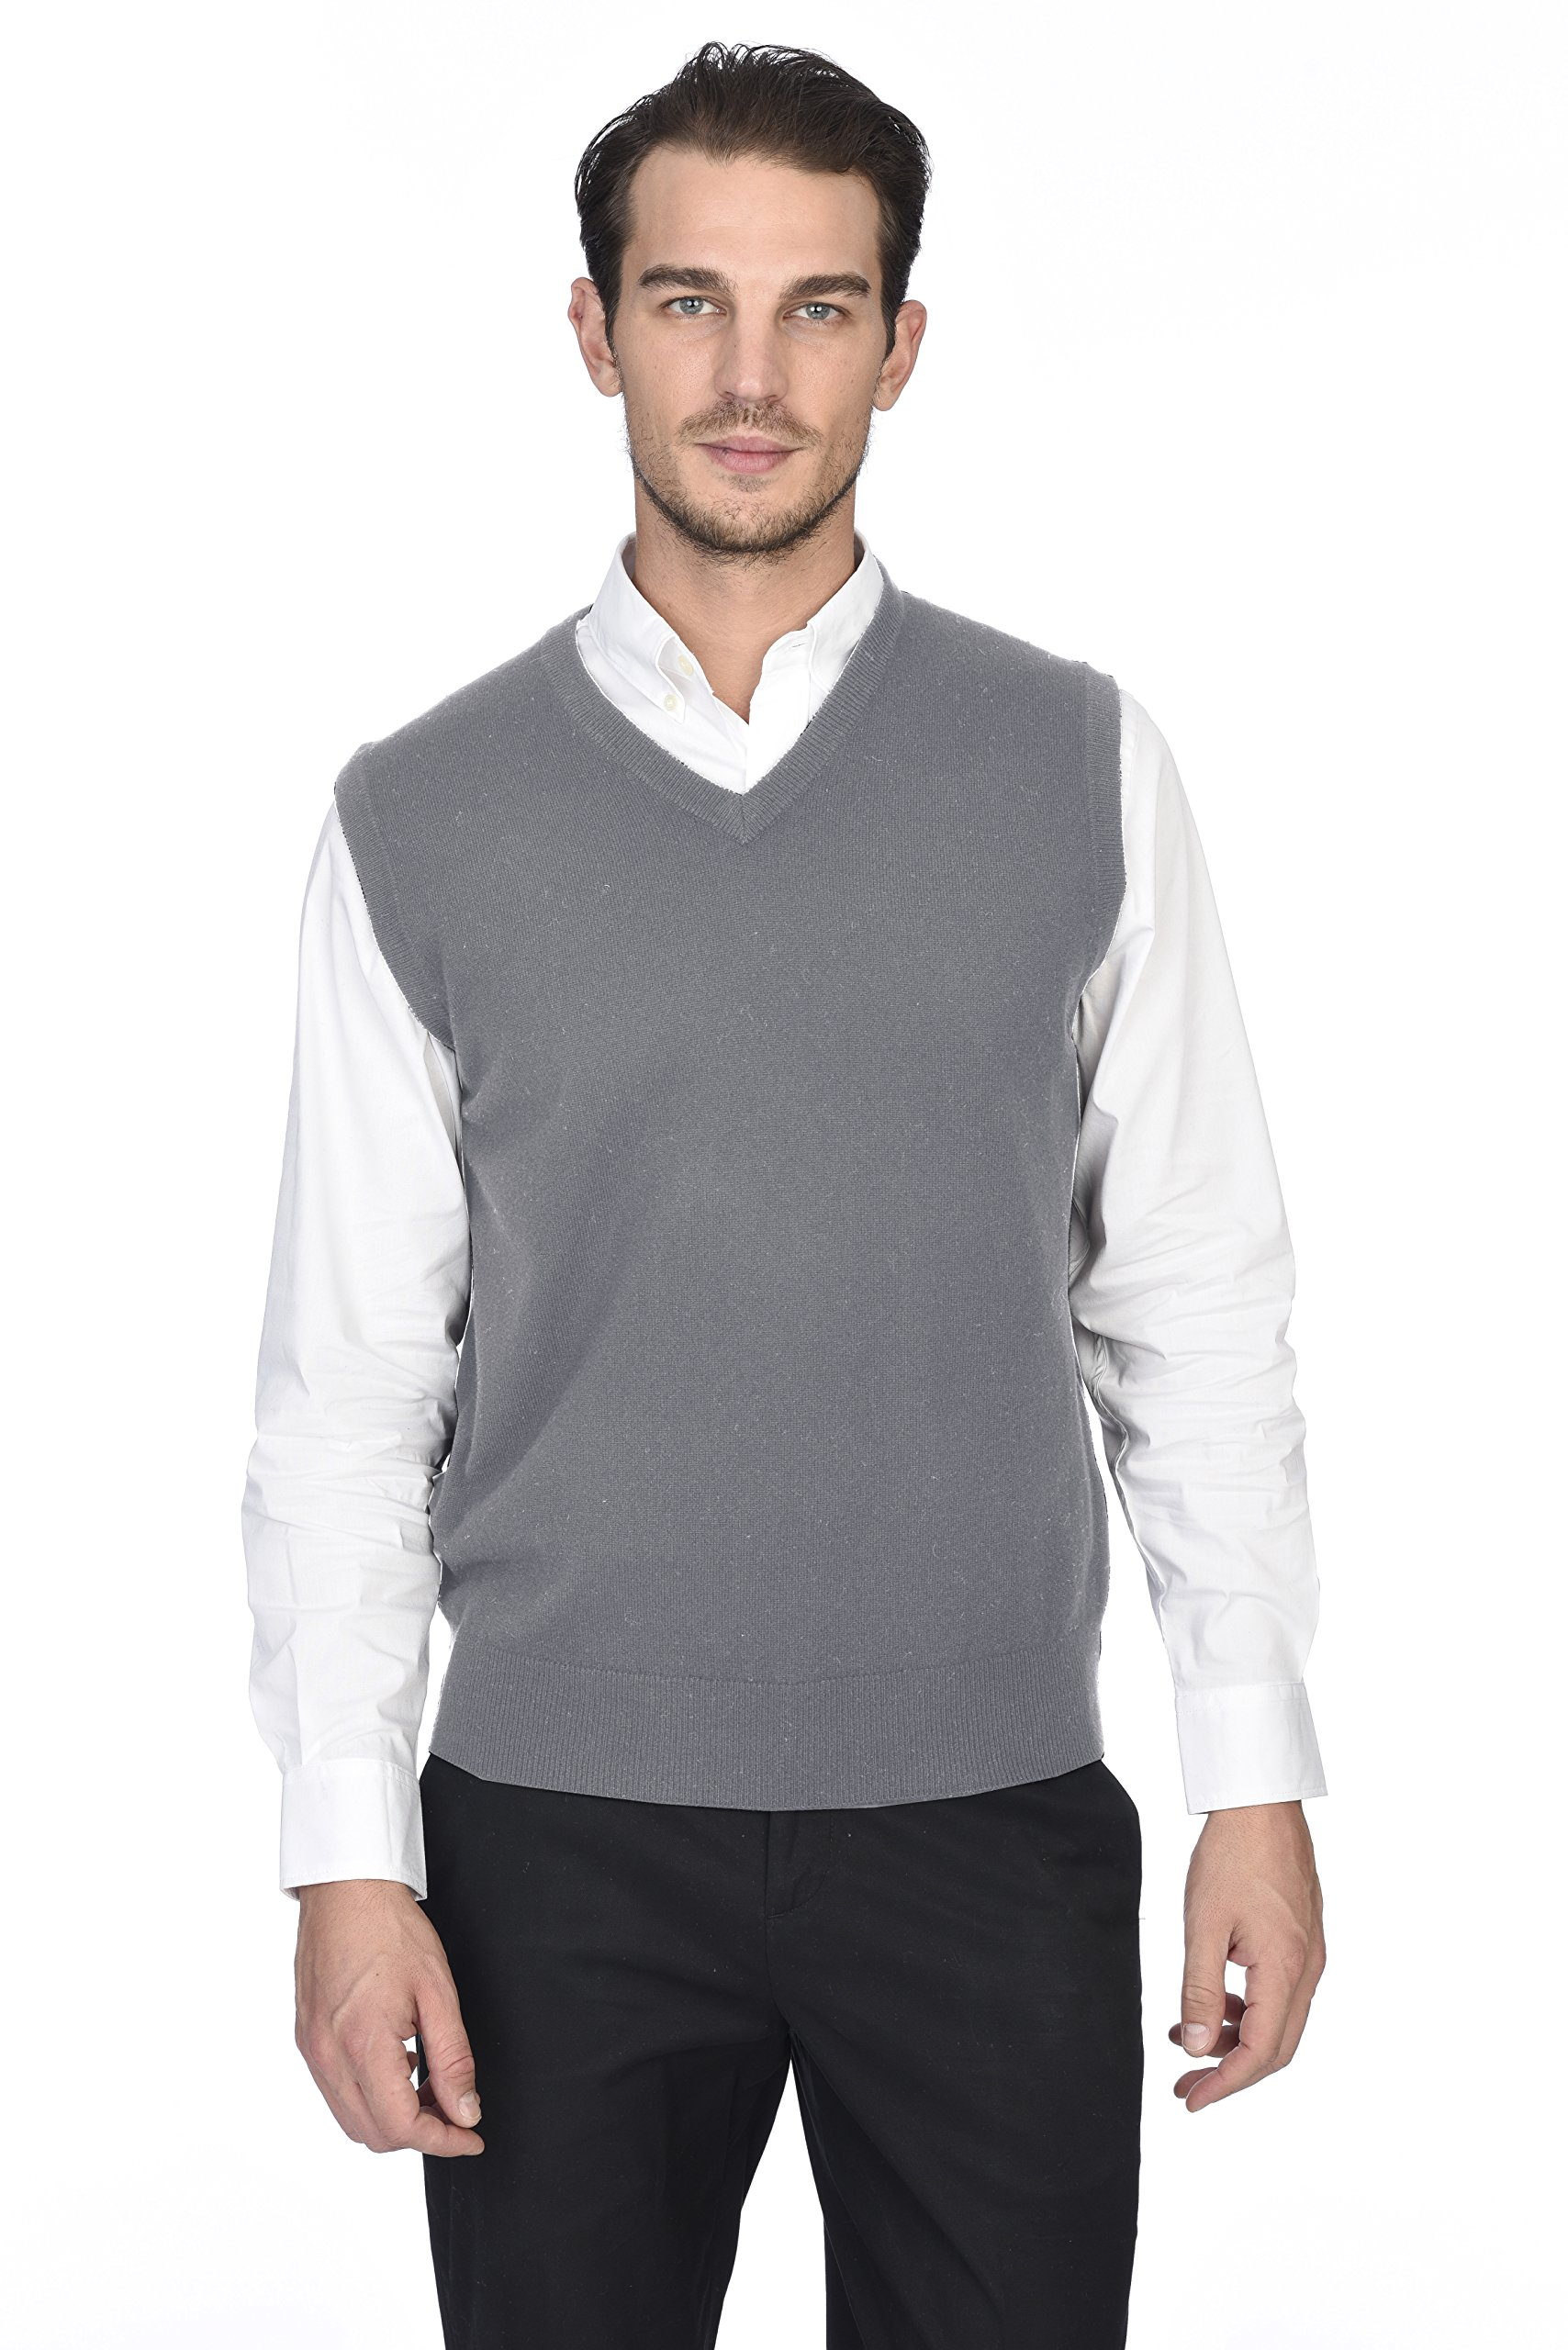 State Cashmere Men's 100% Pure Cashmere Regular Fit Pullover Casual Sweater Vest